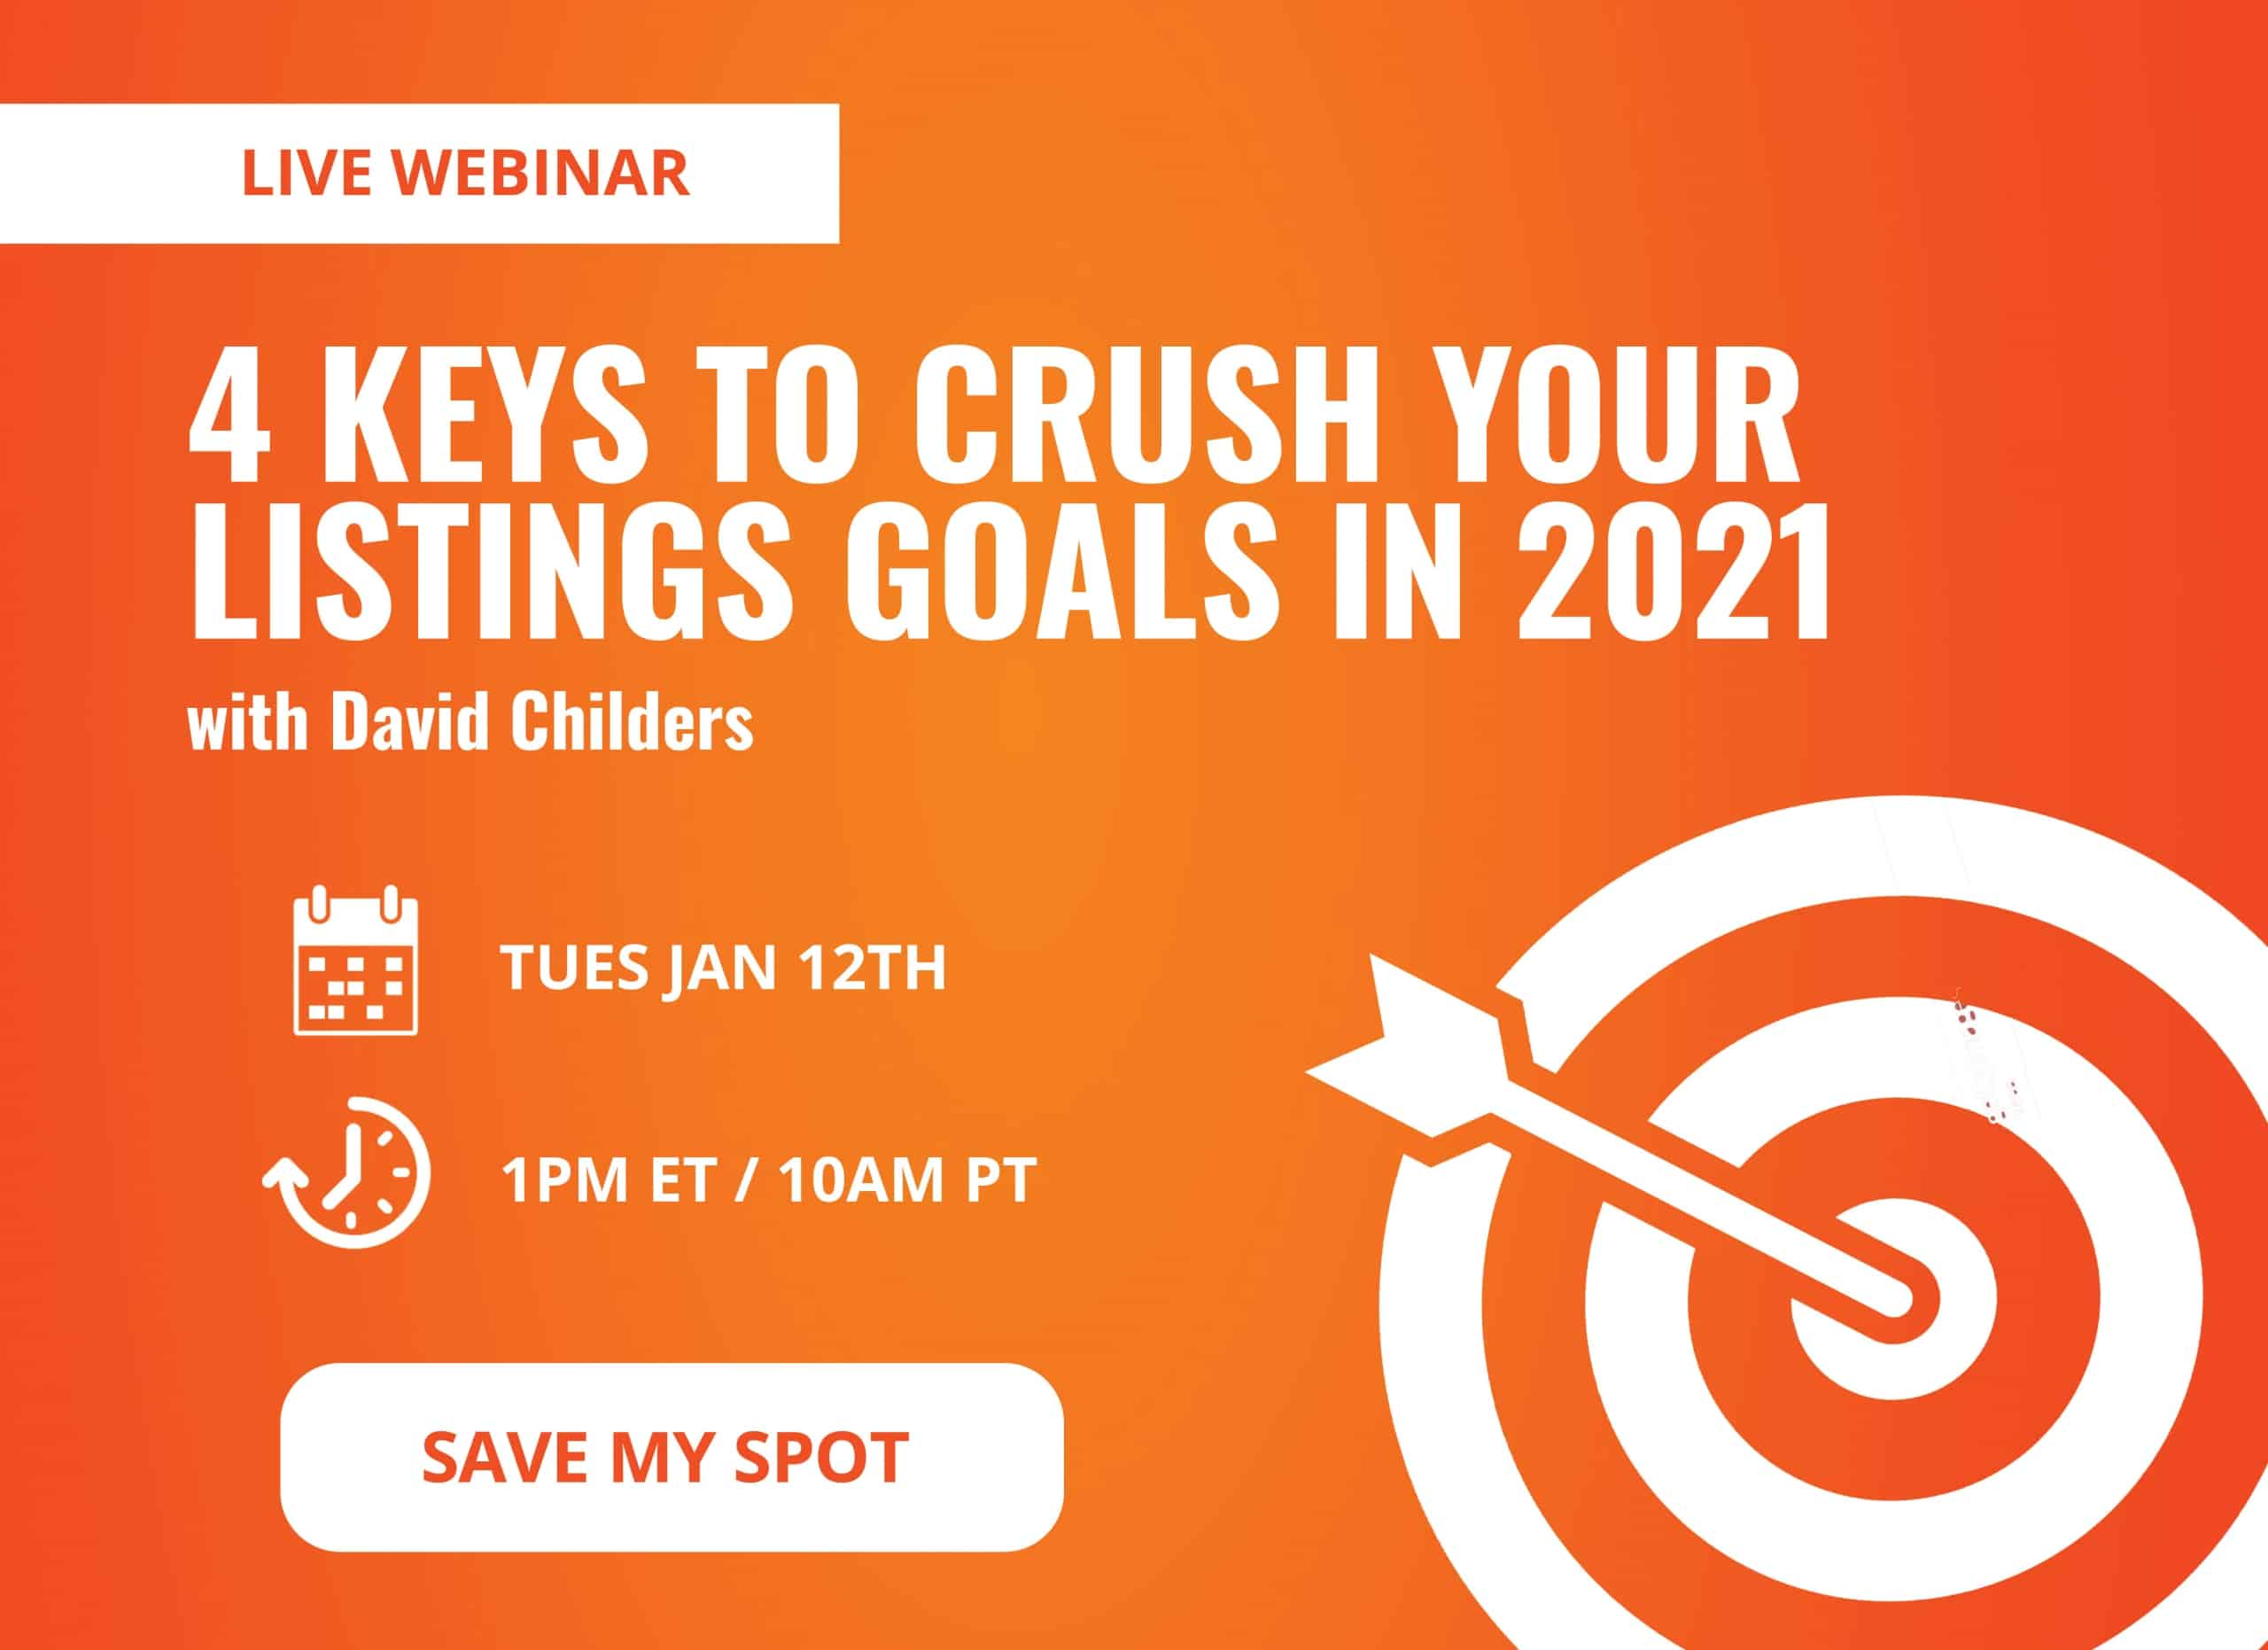 4 Keys to Crush Your Listings Goals in 2021 [LIVE WEBINAR]